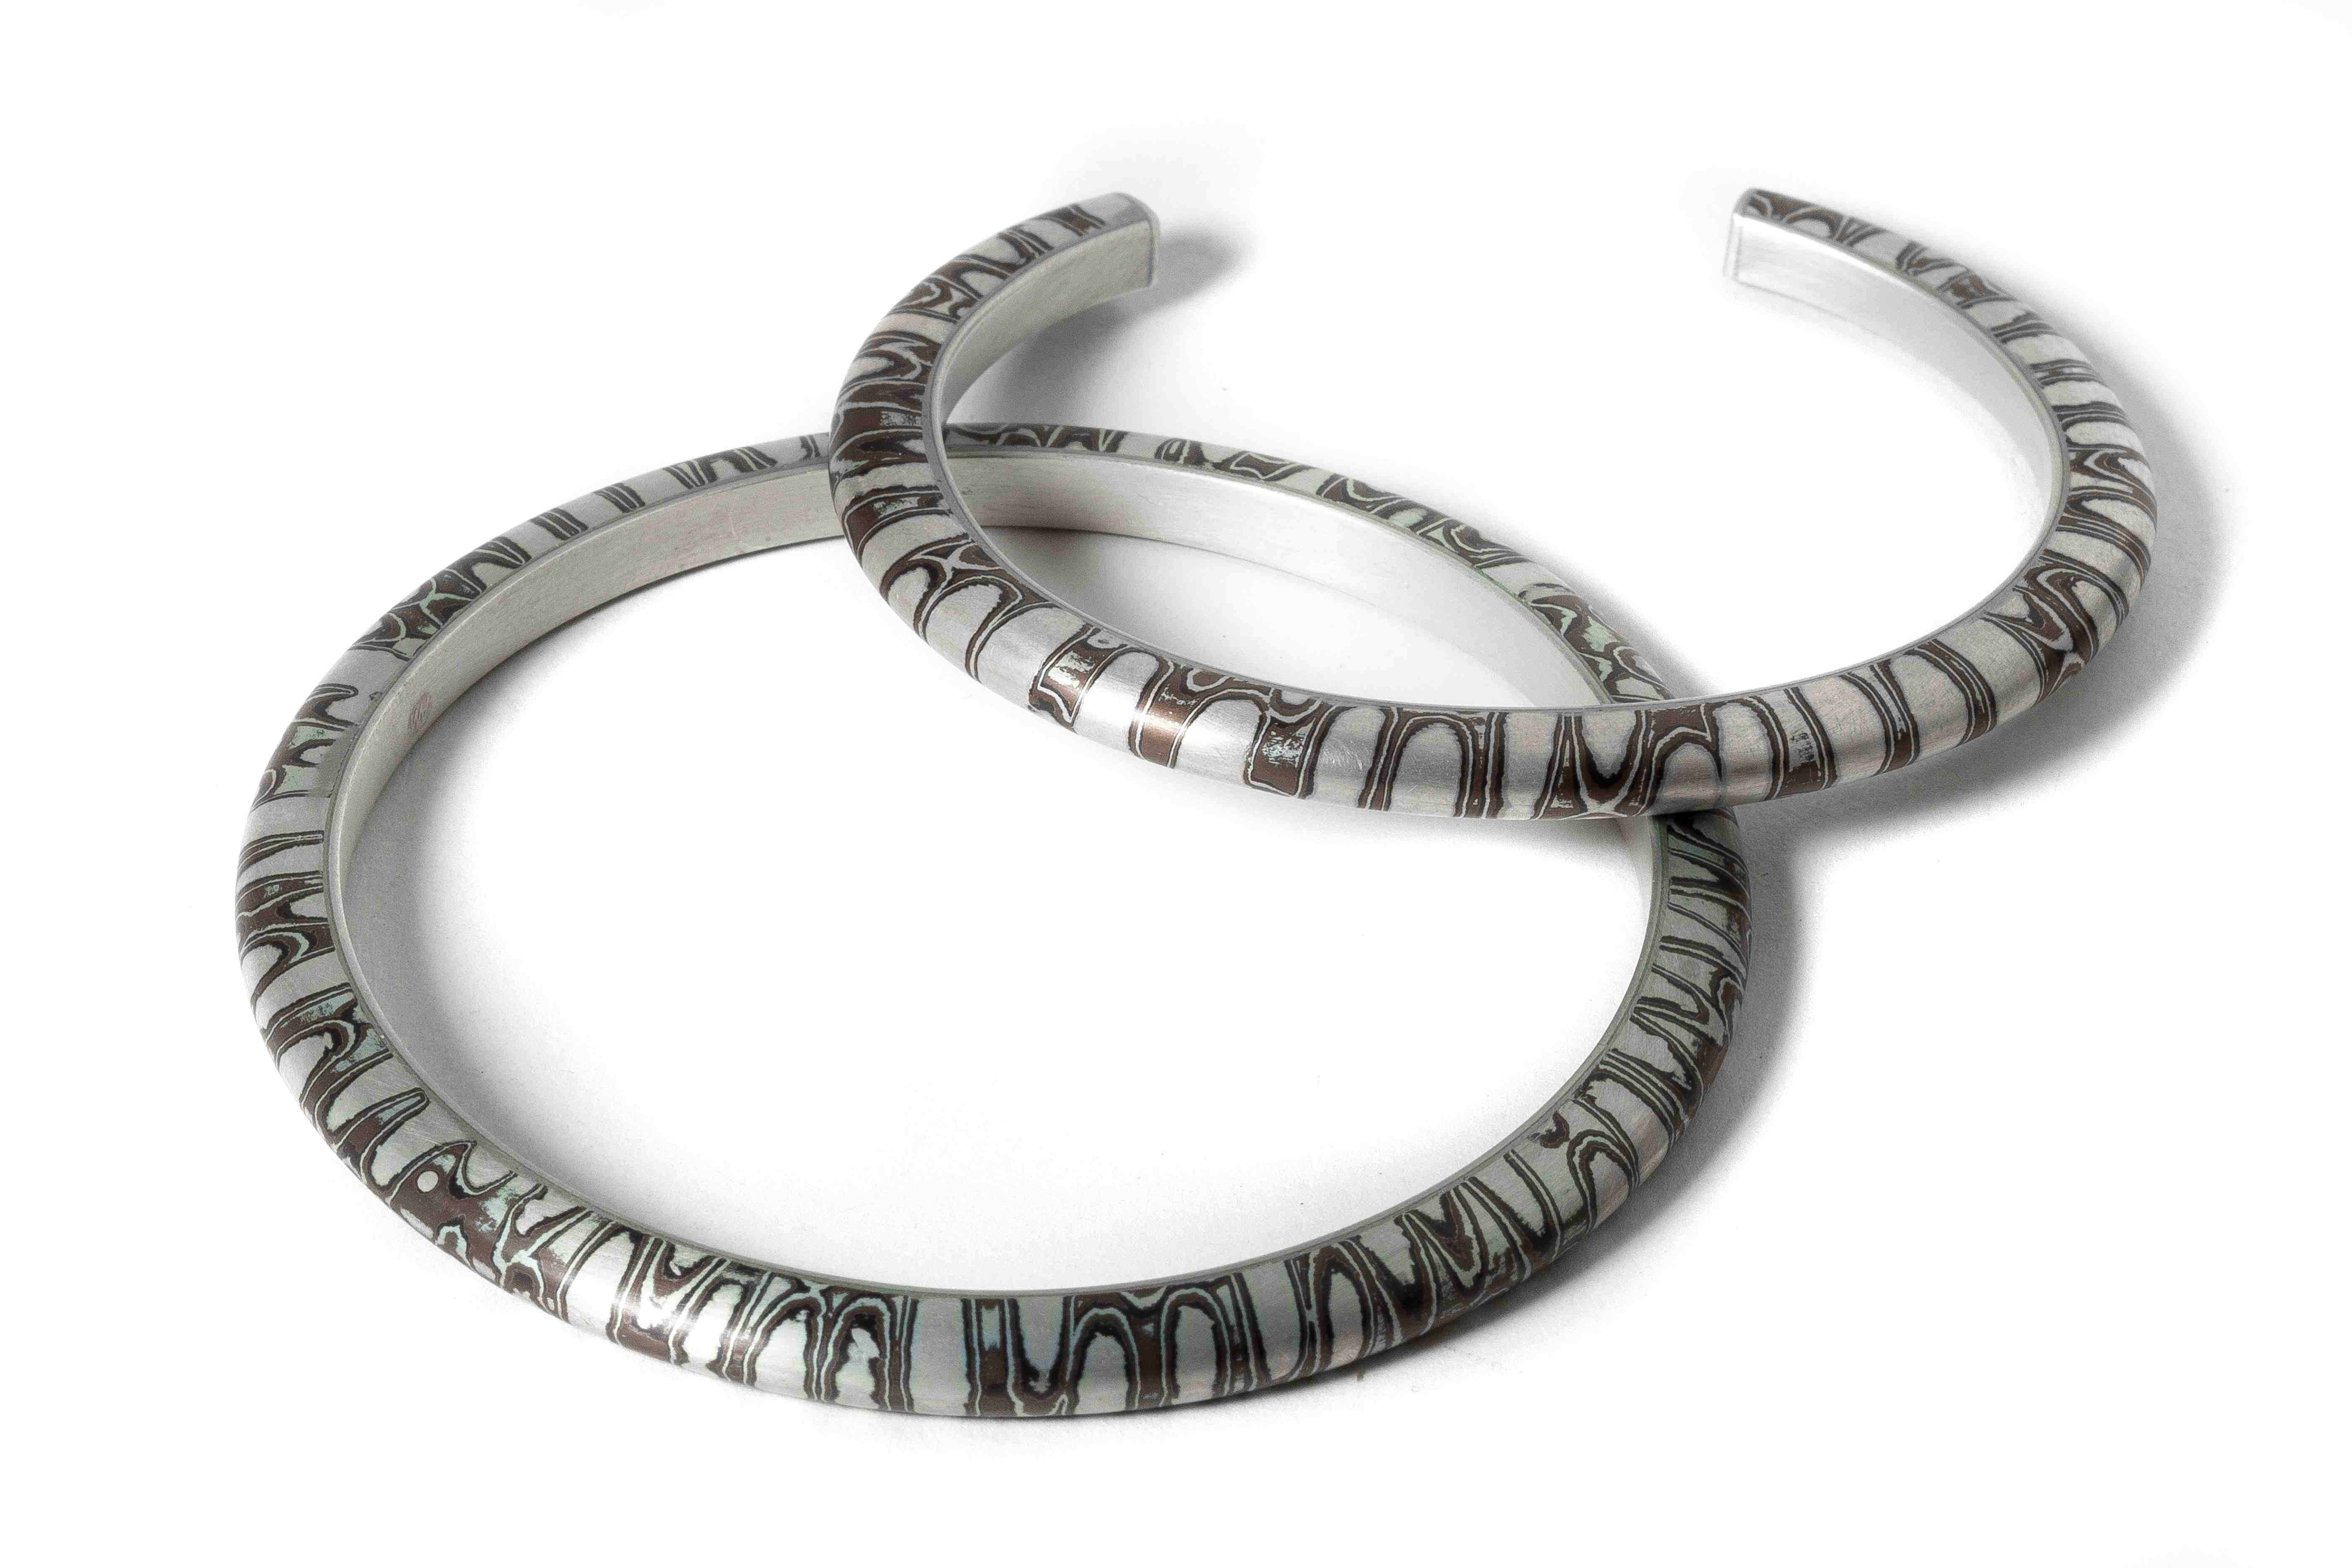 Mokume Gane Bangles made from 7 layers of silver copper and gilding metal